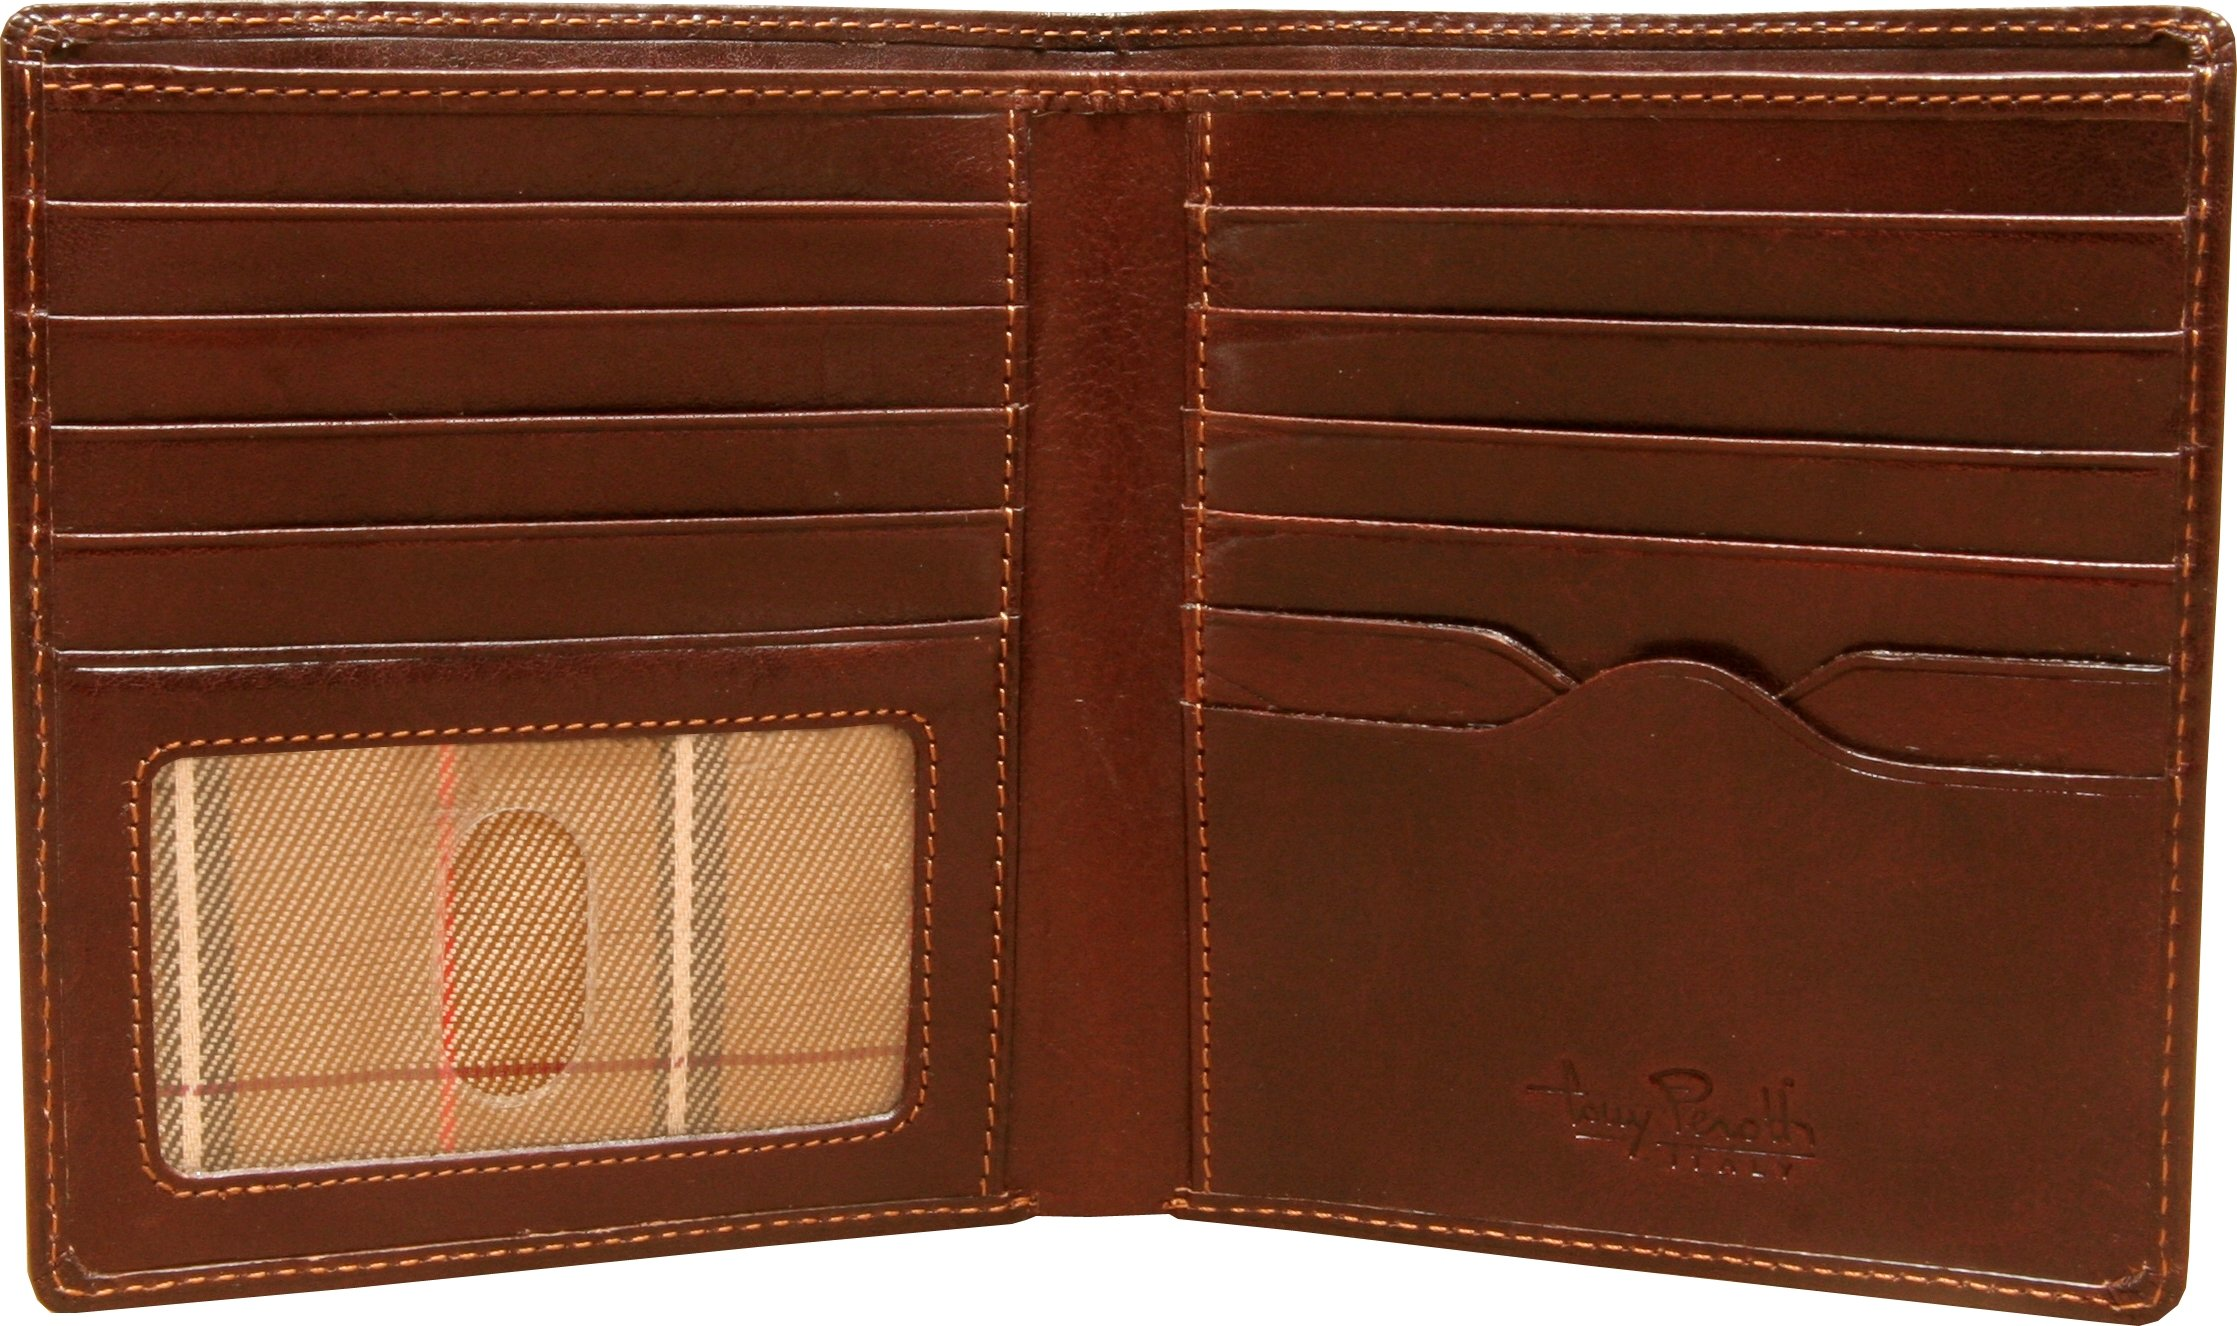 Mens Leather Bifold Hipster Wallet Large with ID Window and Multi Business and Credit Card Holder Slots made with Real Italian Cowhide Leather by Tony Perotti by Tony Perotti